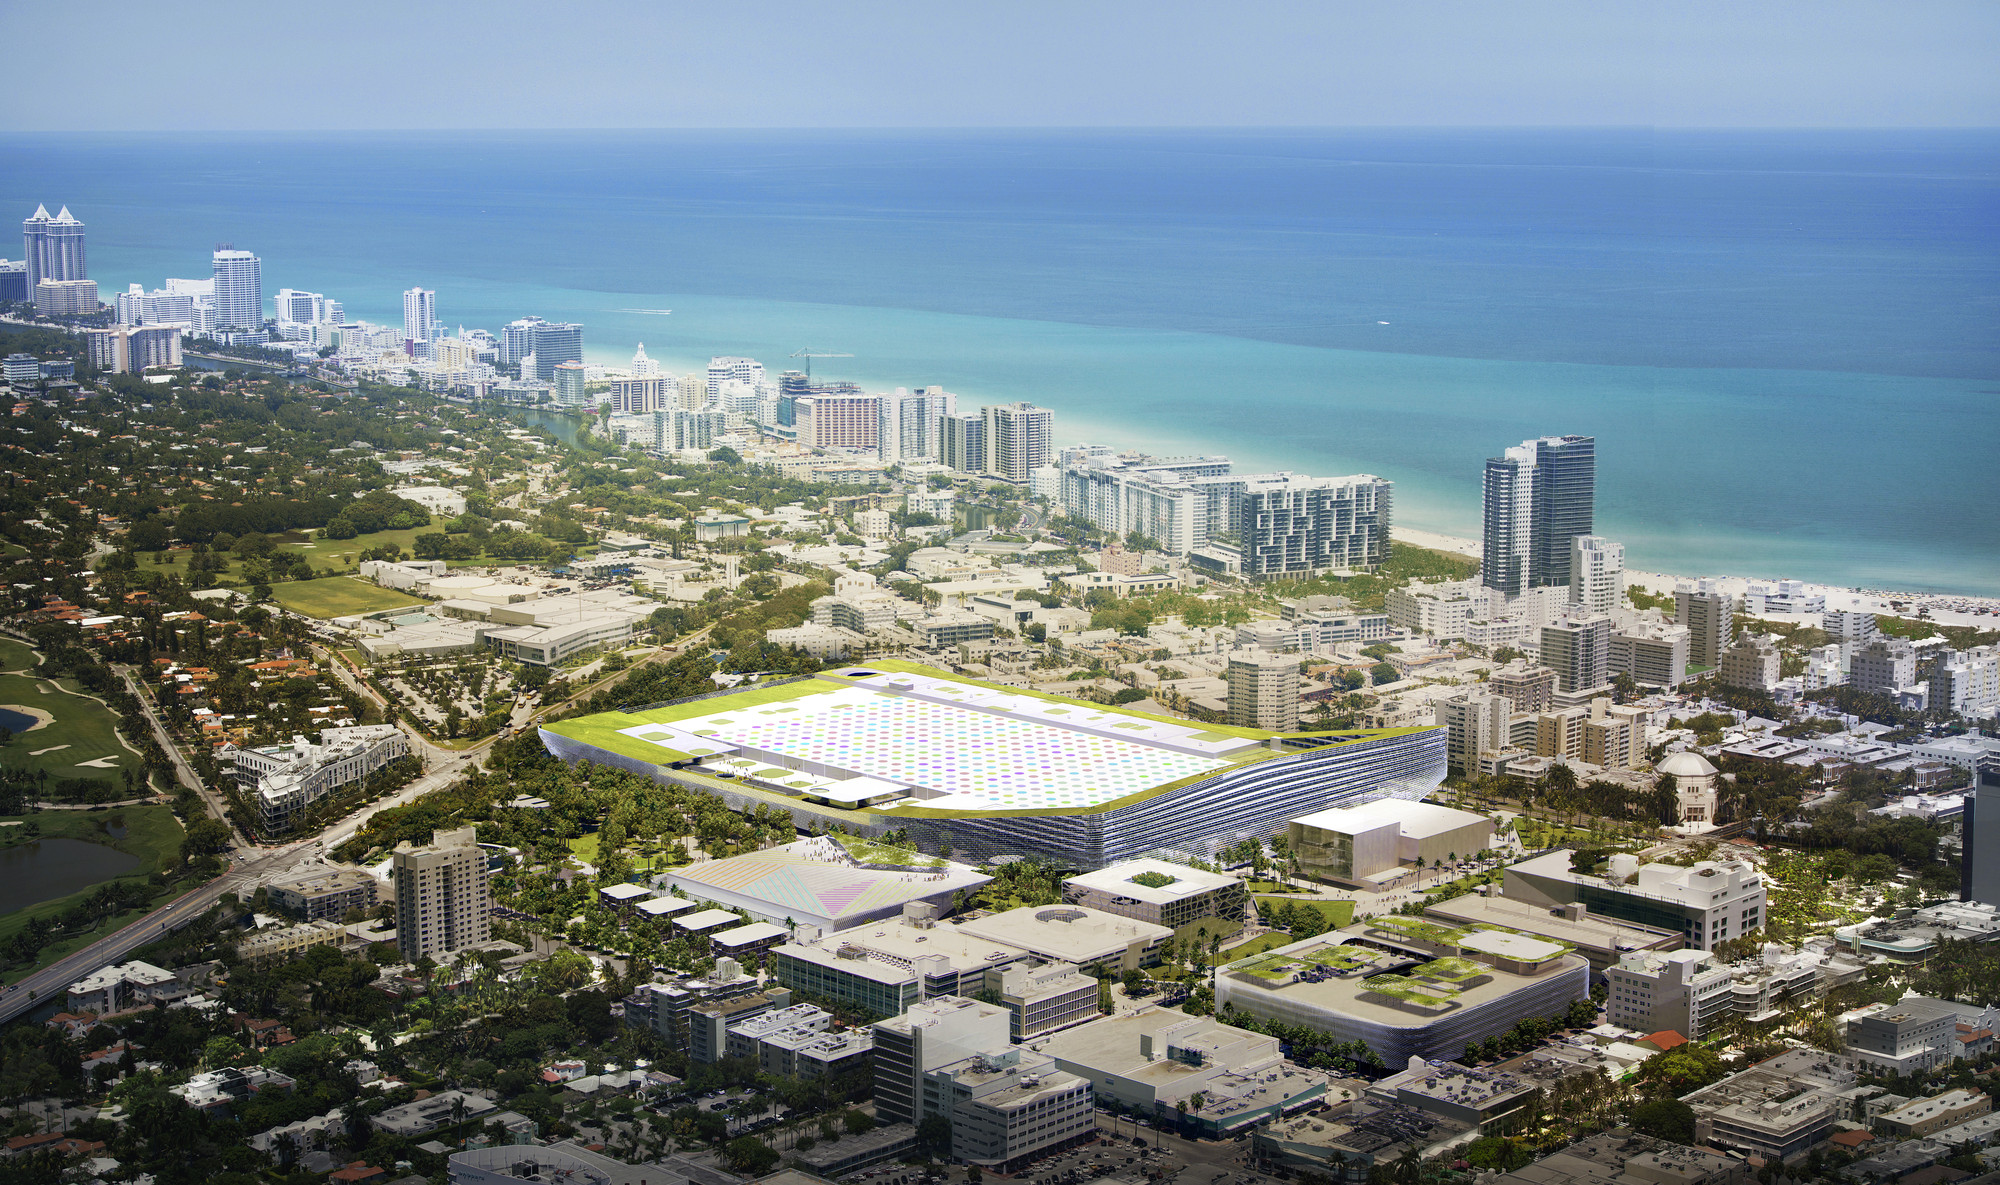 BIG Unveils Design for Miami Beach Convention Center